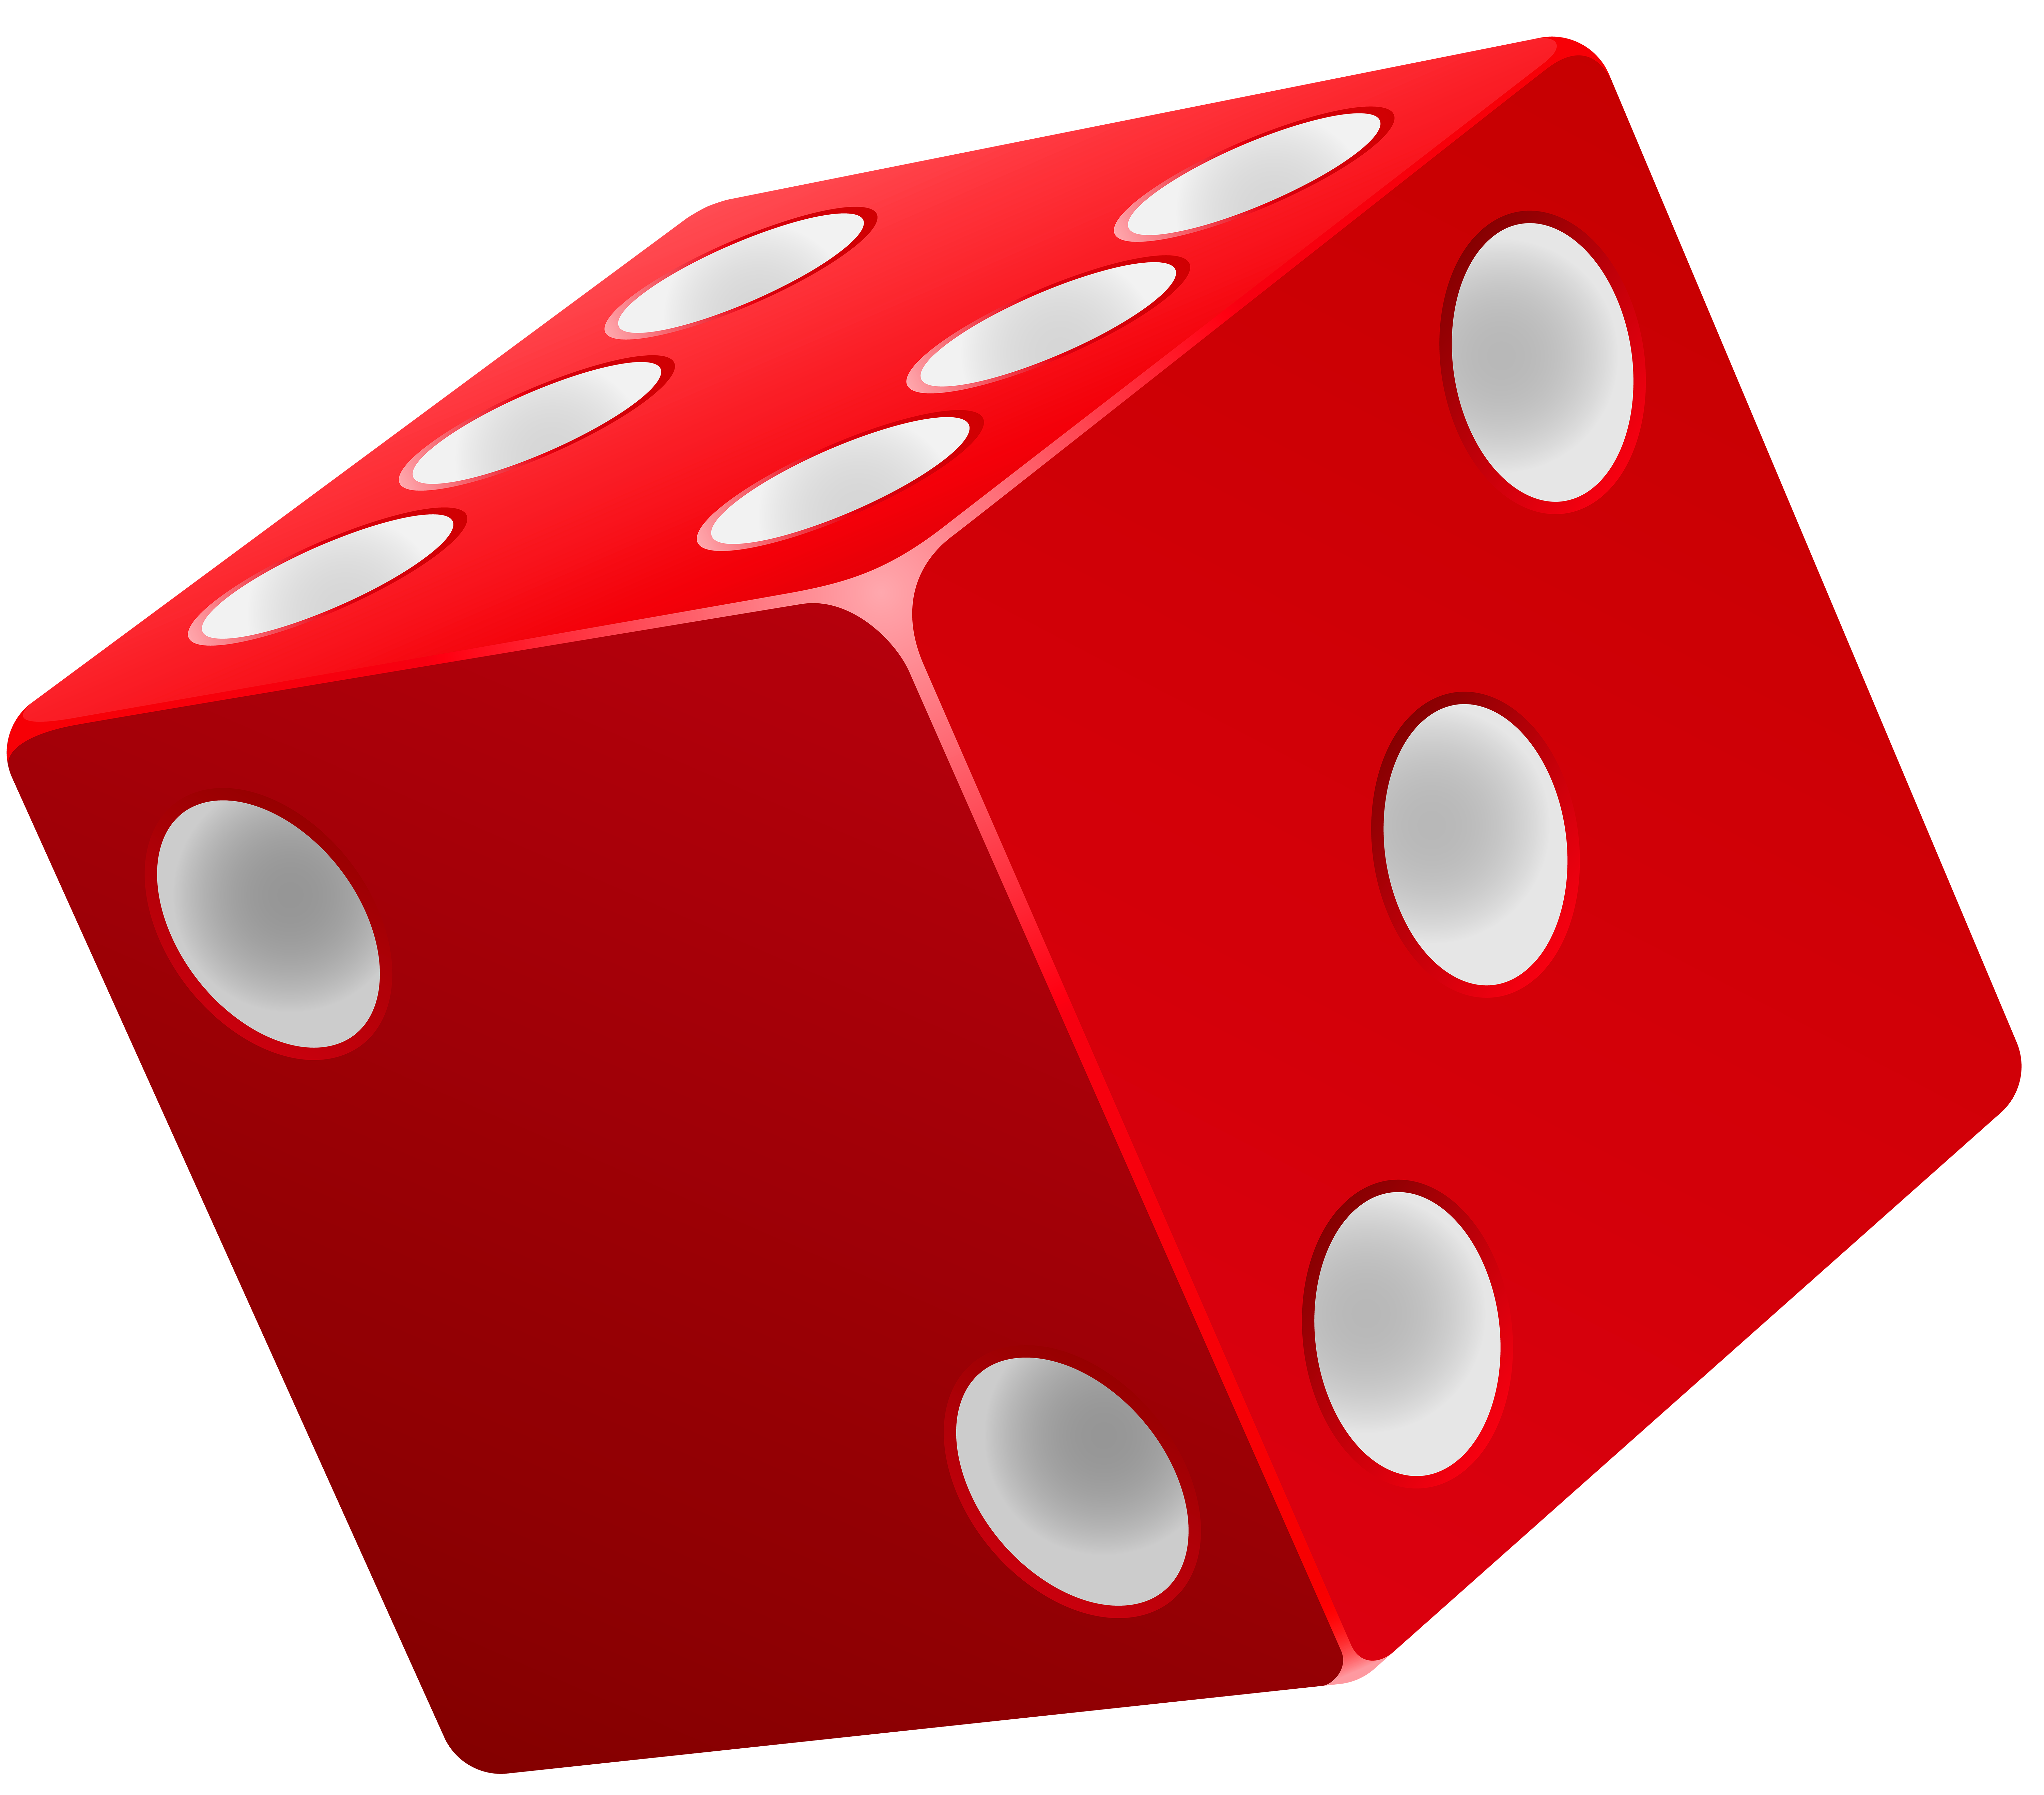 Dice red png clip. Games clipart recreation